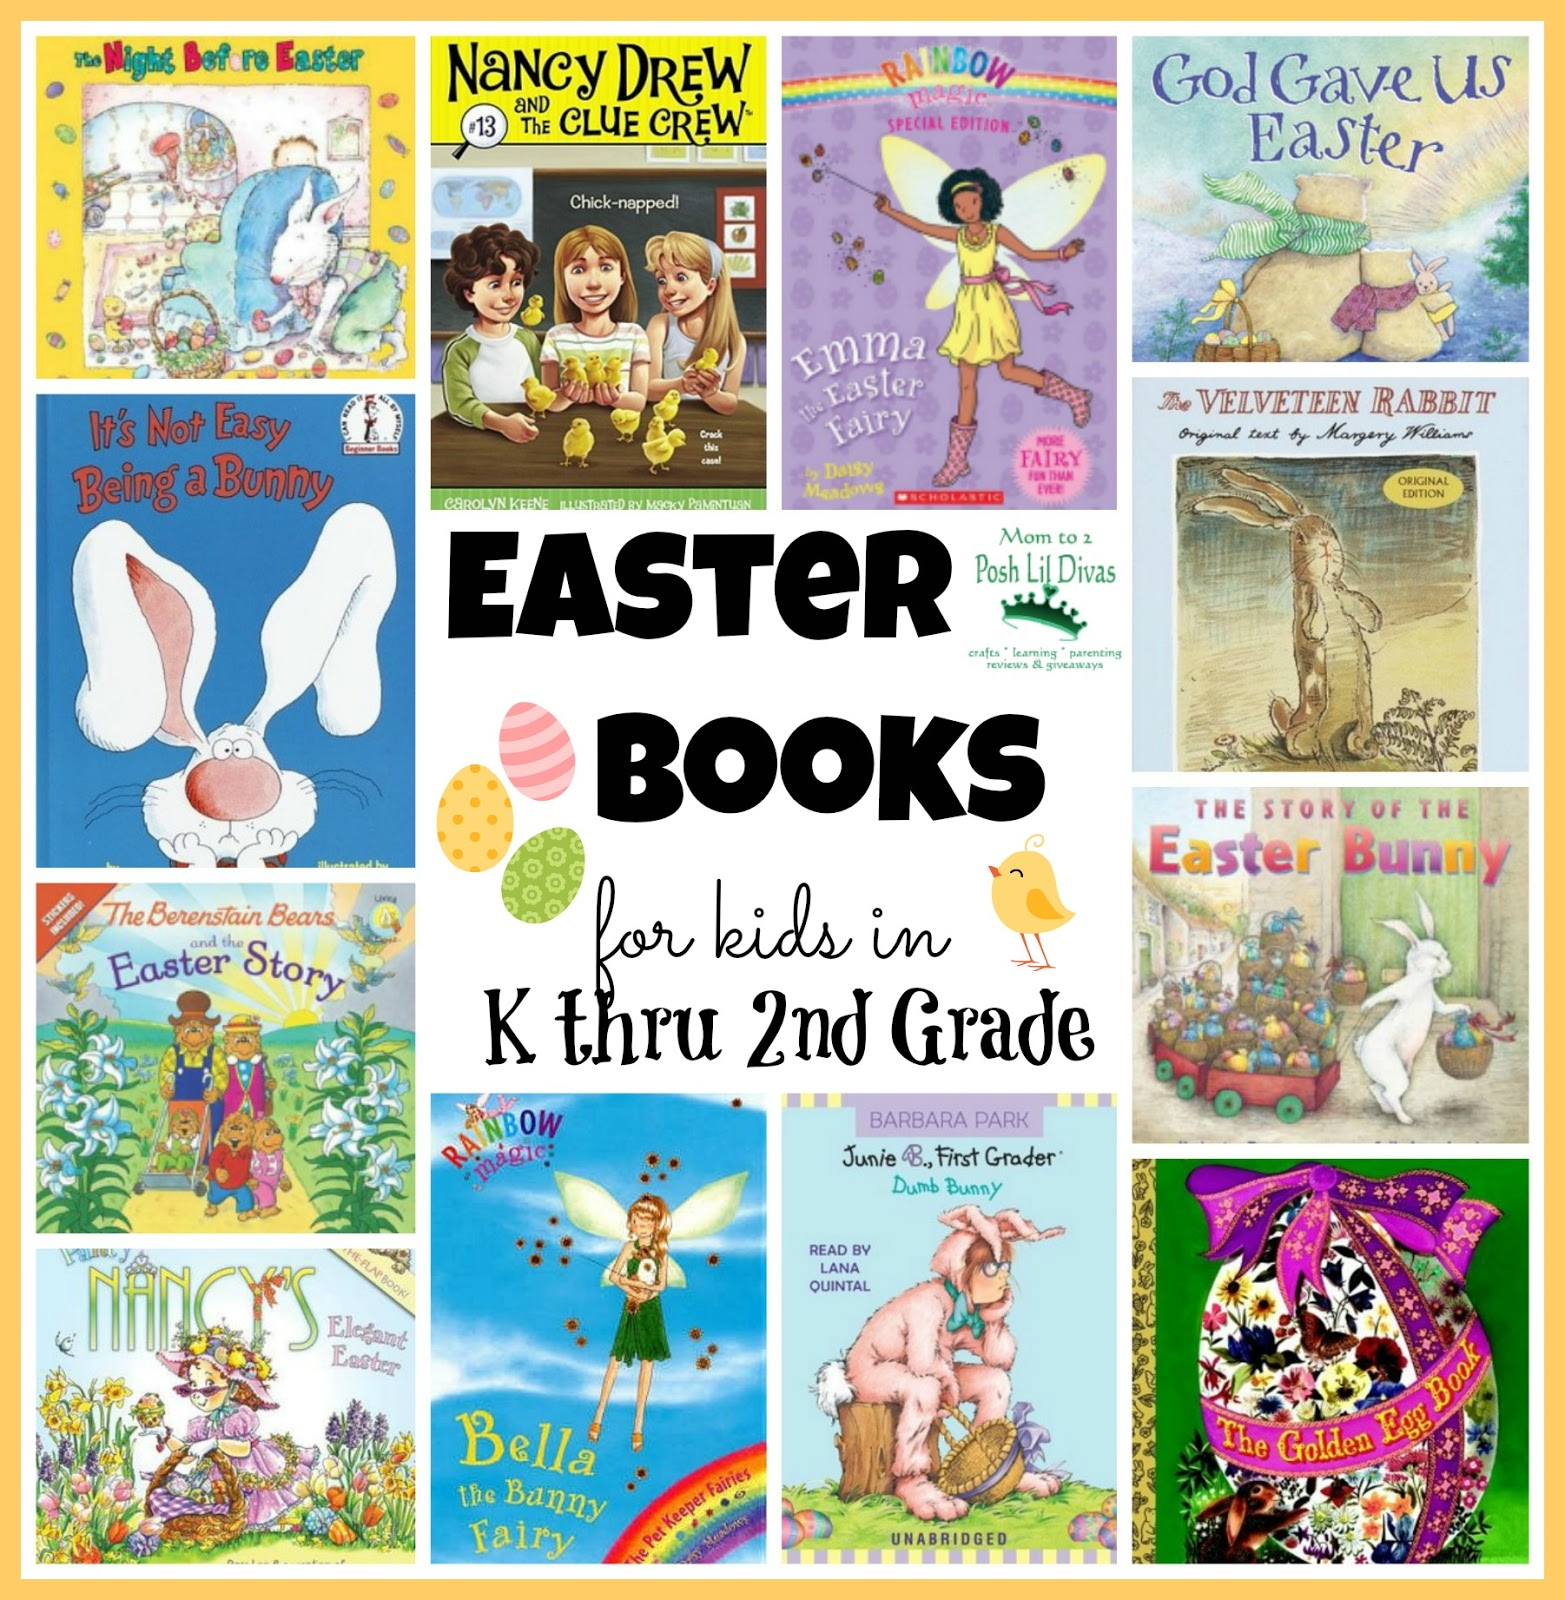 Check Out These Easter Themed Books For Kids In K Thru 2nd